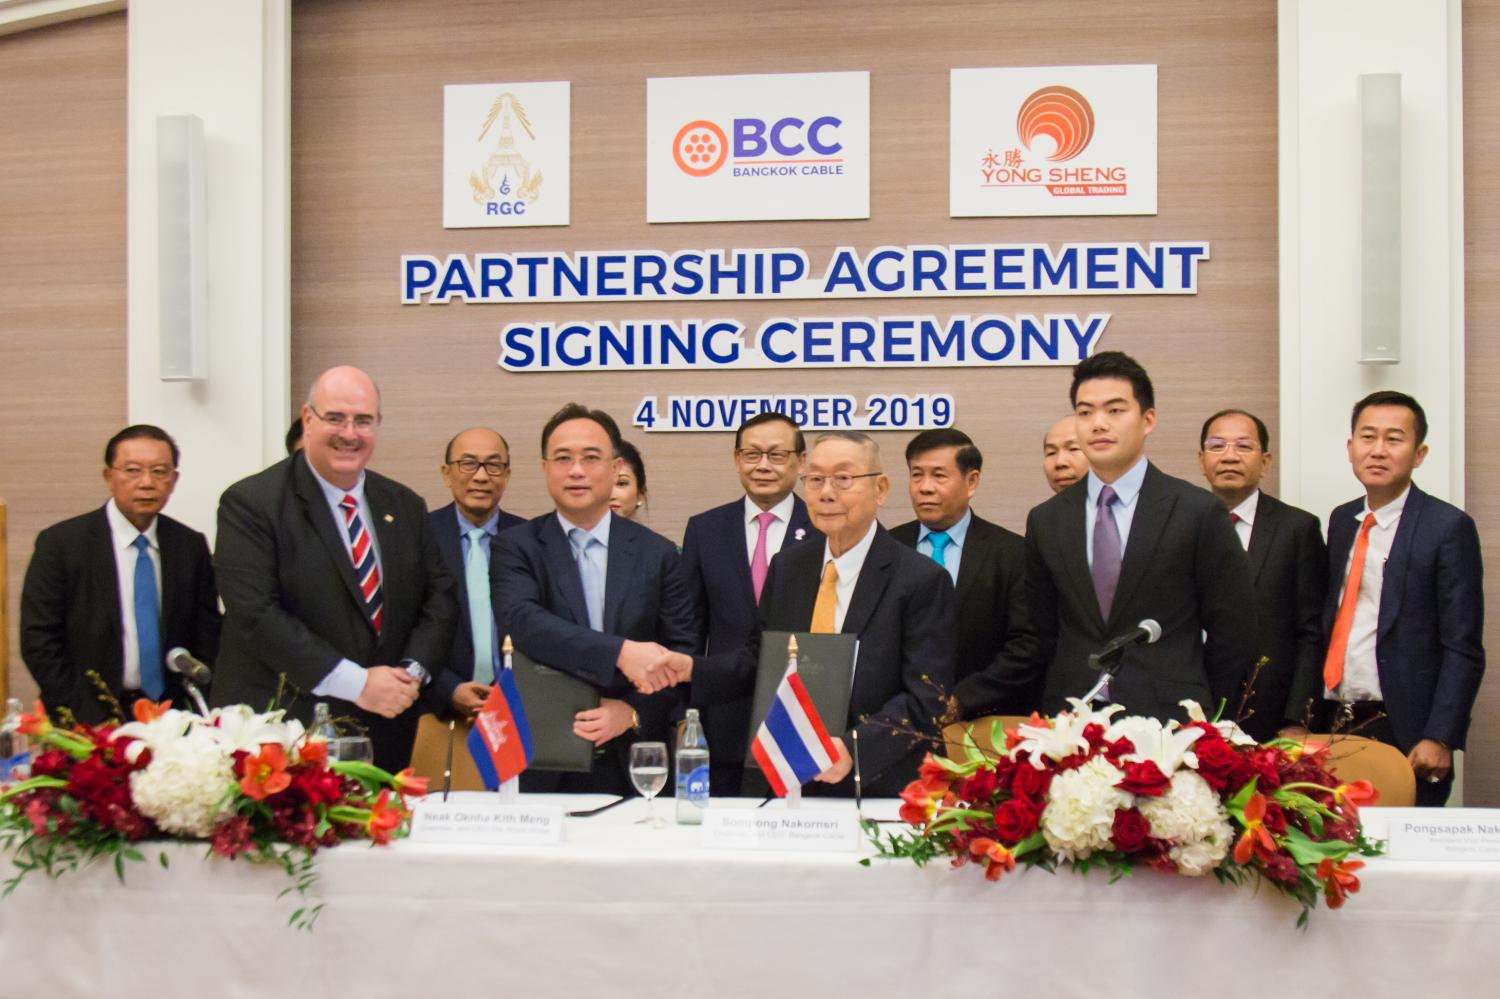 Bangkok Cable Co signs a partnership agreement with Yong Sheng Trading Co to form a venture in Cambodia's wire and cable market.